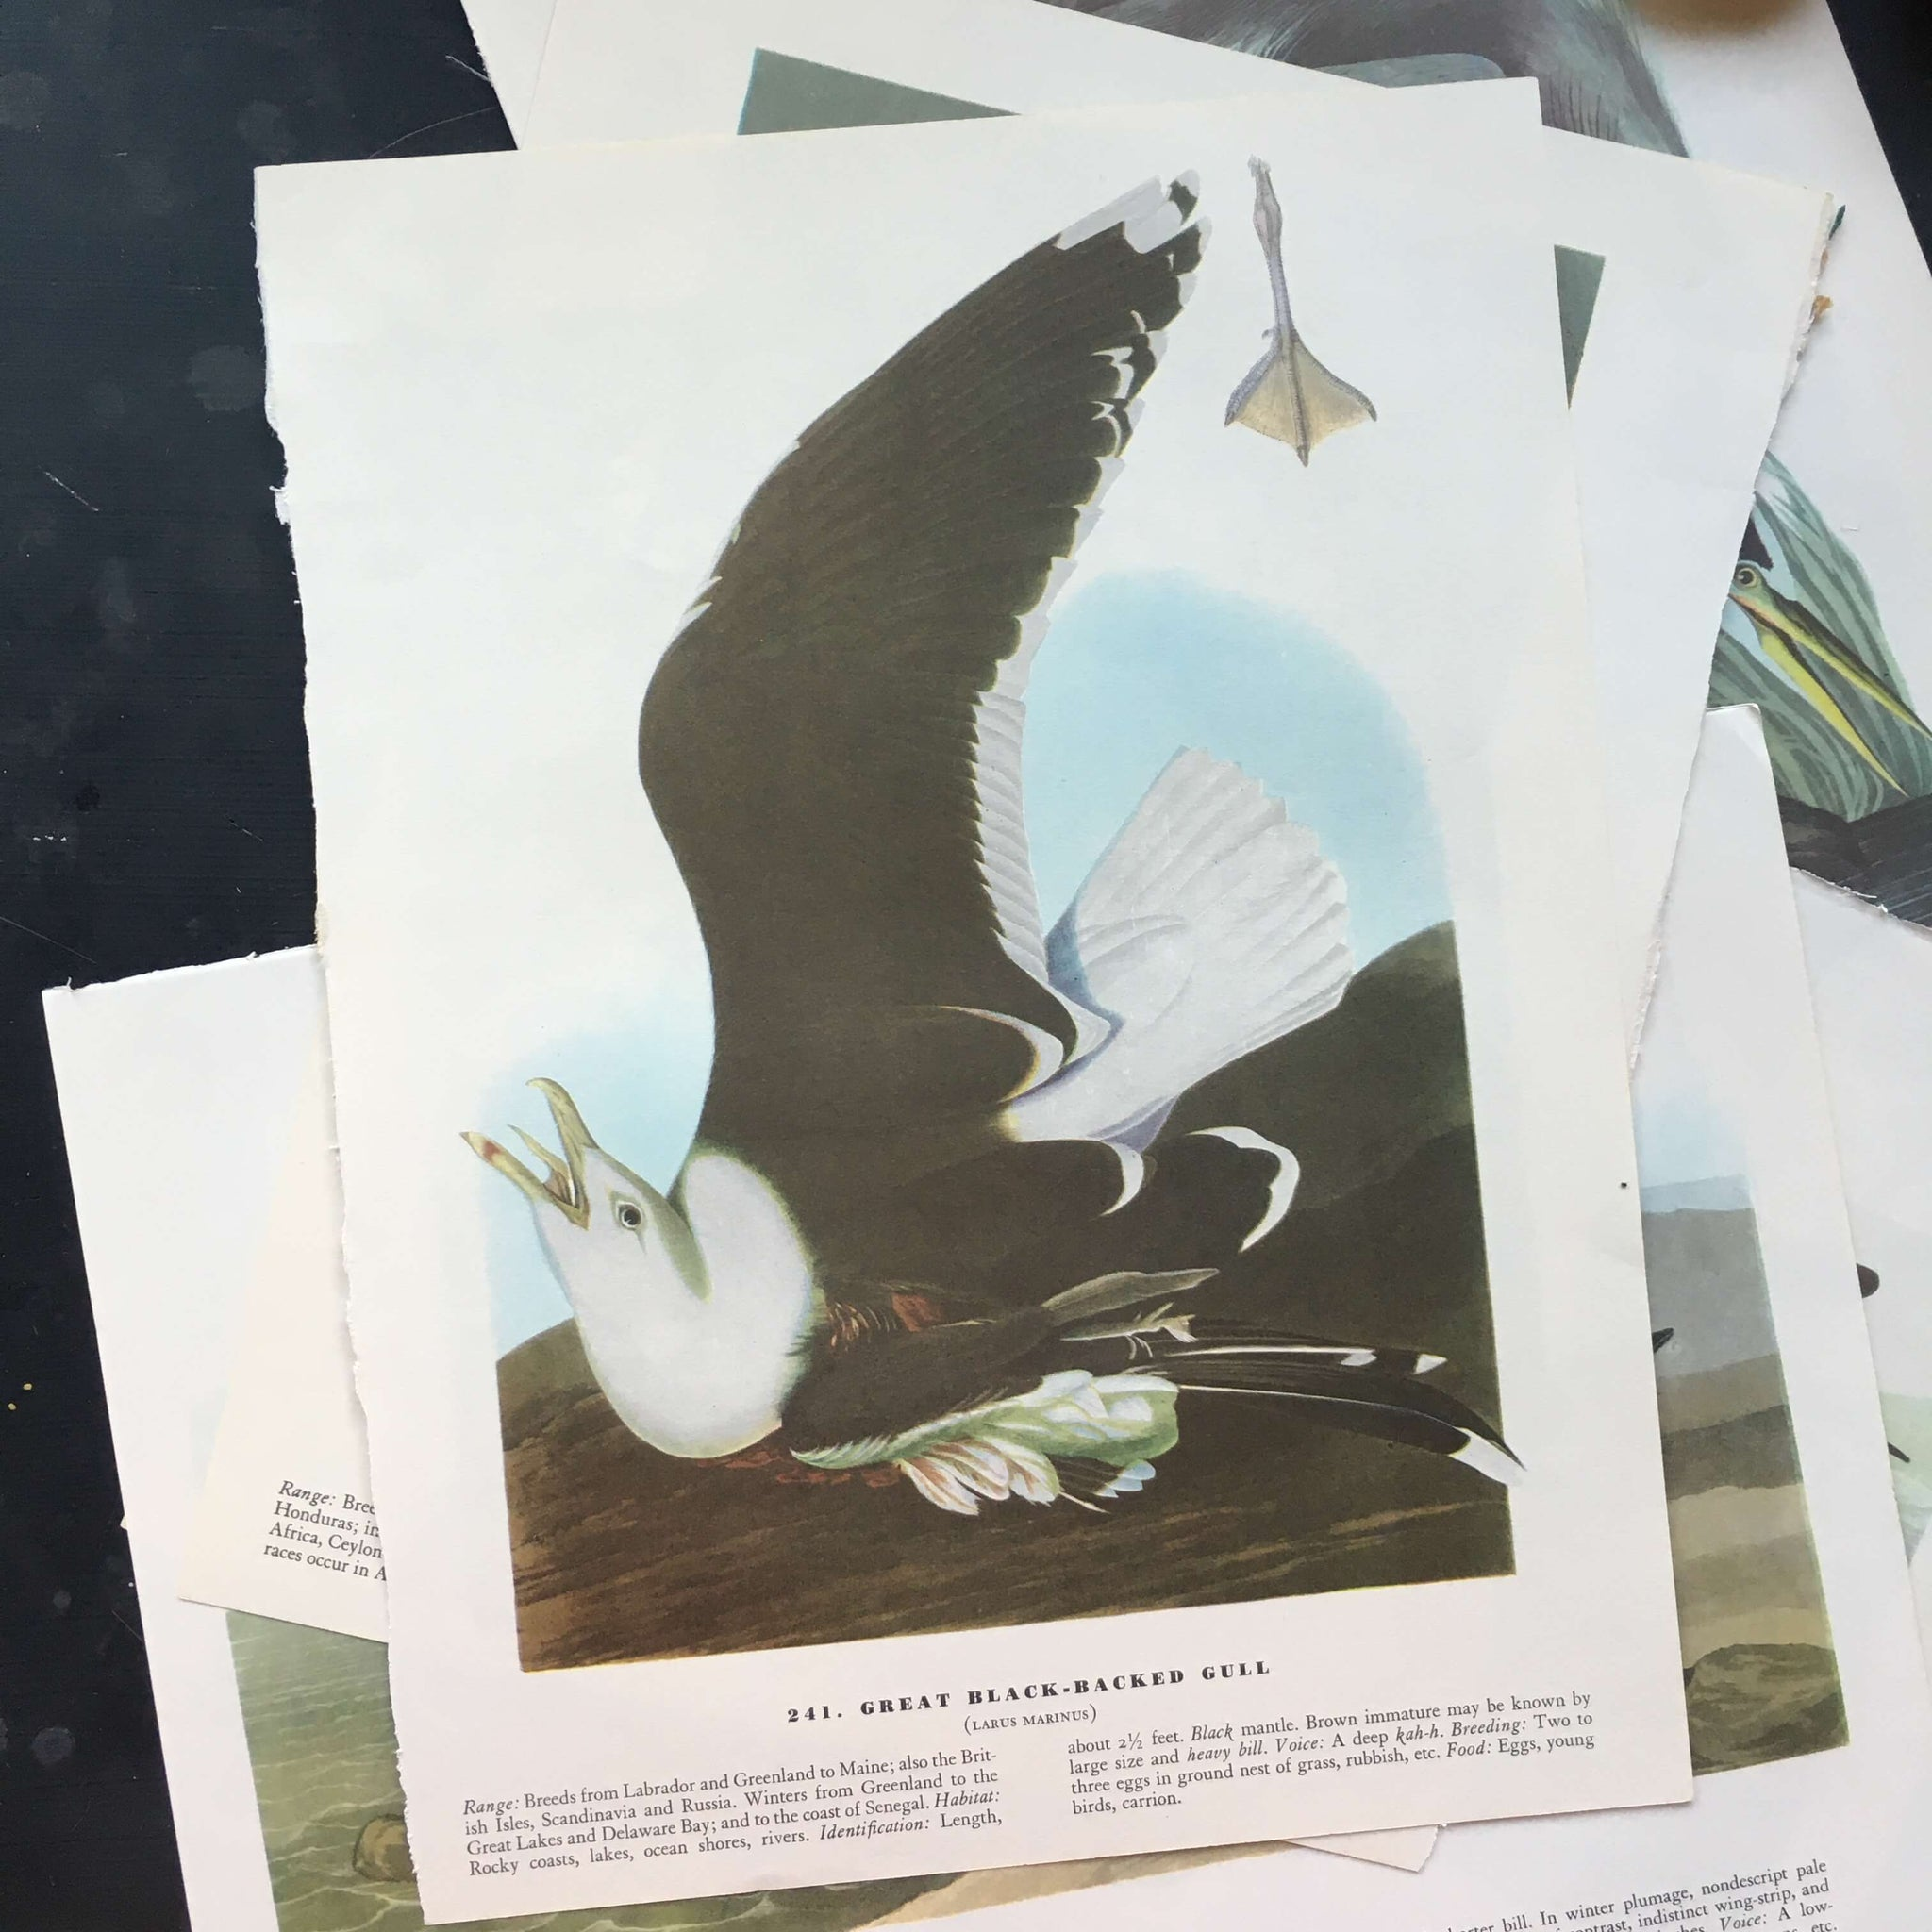 Vintage Audubon Bird Prints - Snowy Egret and Great Black Backed Gull - John James Audubon